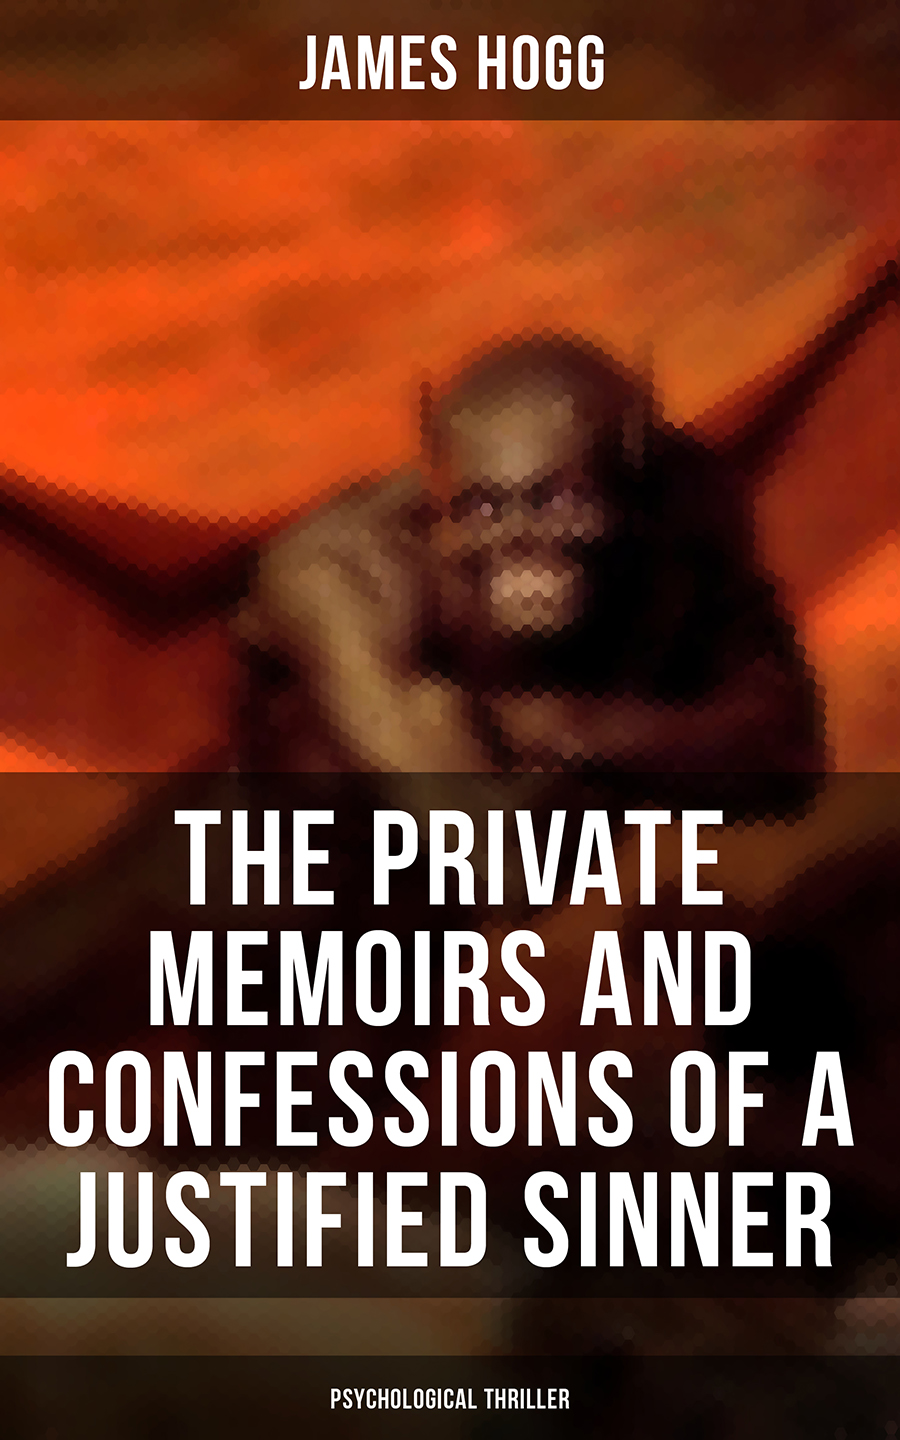 James Hogg The Private Memoirs and Confessions of a Justified Sinner (Psychological Thriller) antwan kirk ramblings of a sinner